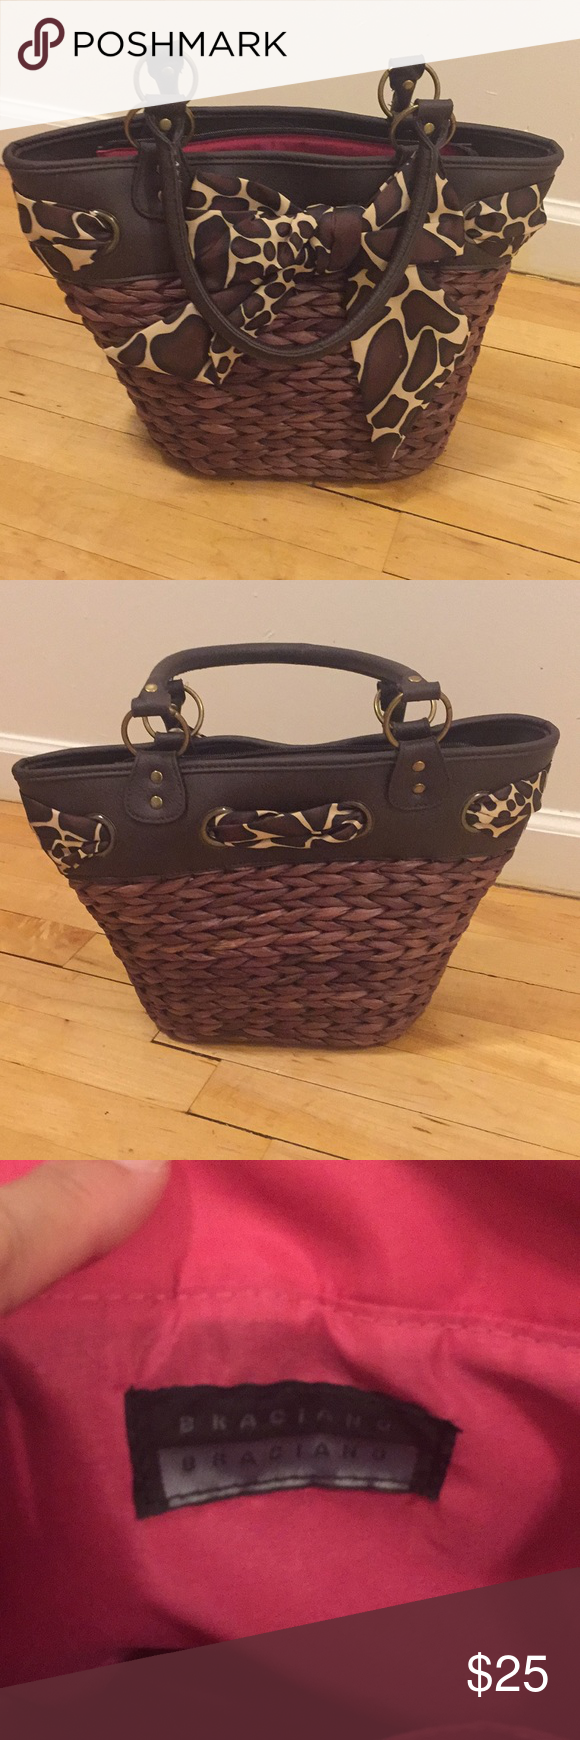 Braciano Purse Brown And Cream Has A Small Tear On The Bottom Please See Pictures For Details Bags